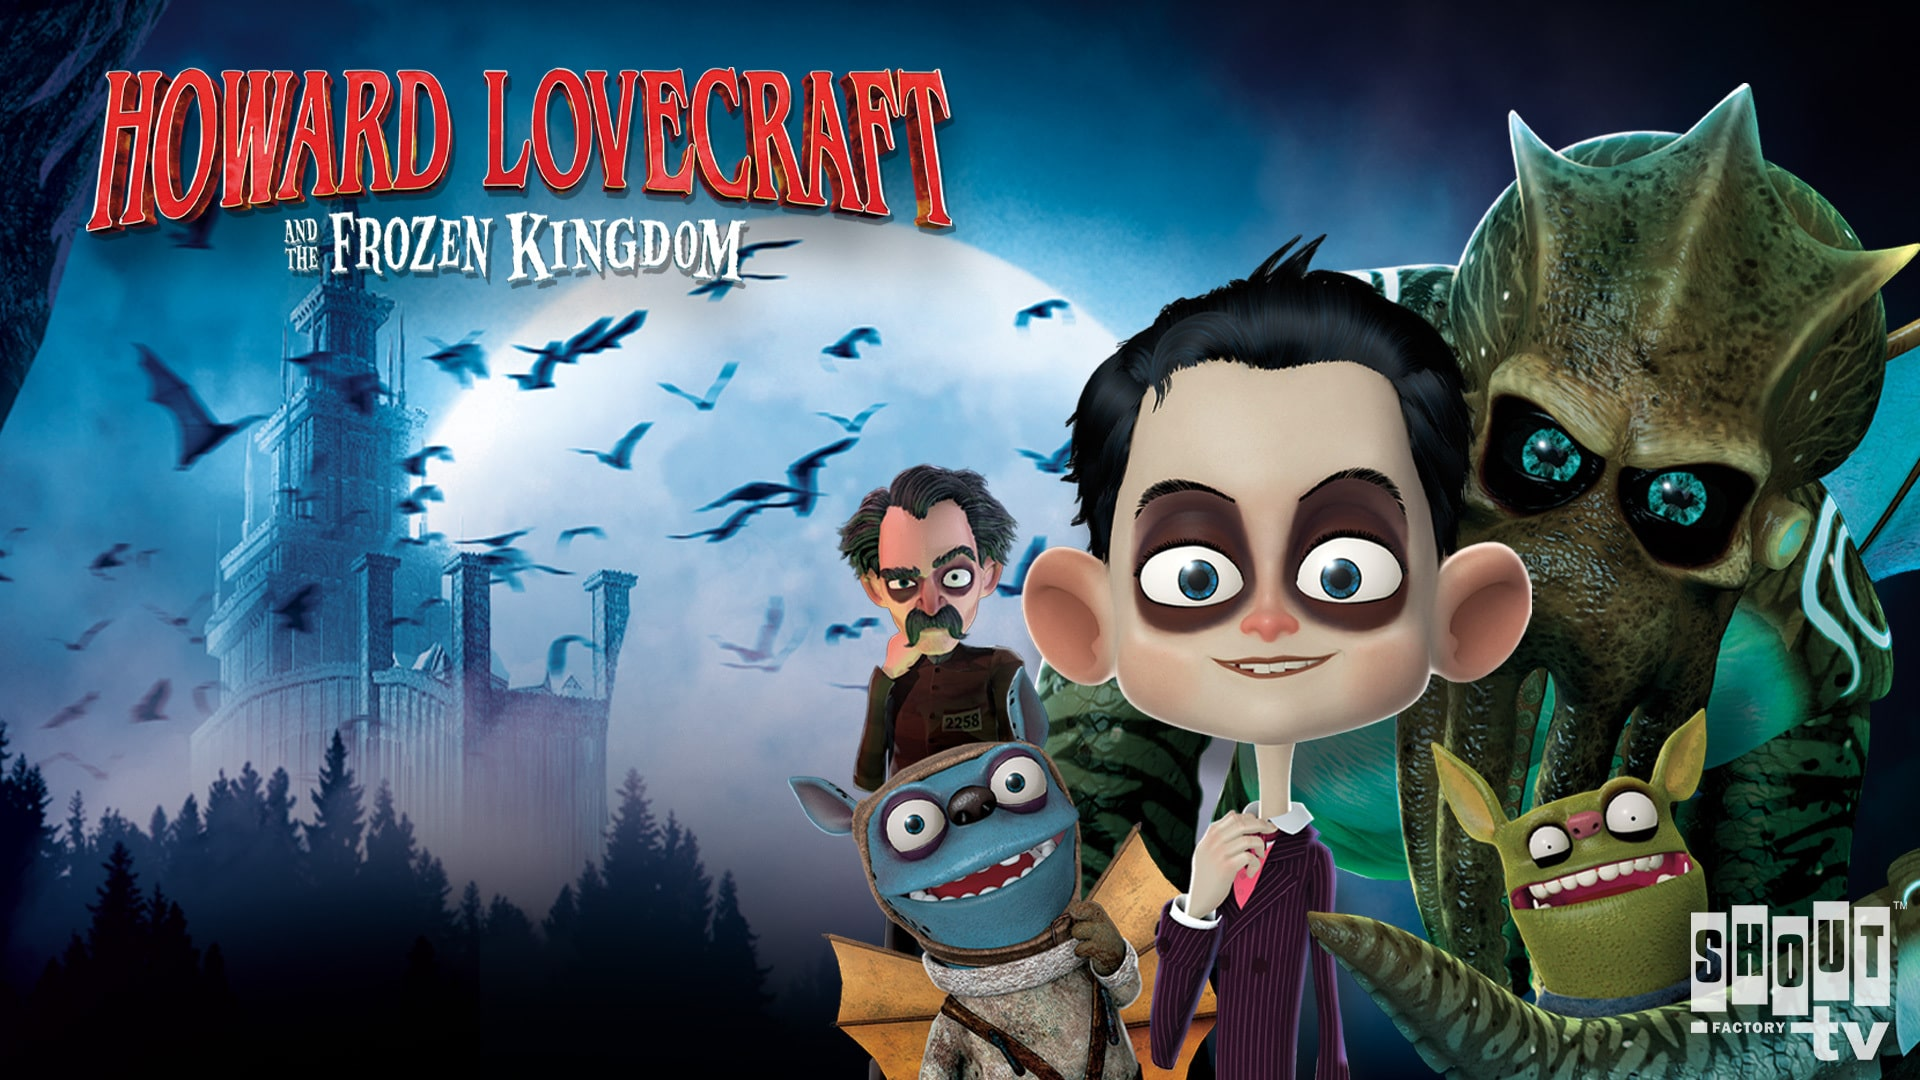 Howard Lovecraft and the Frozen Kingdom (2016) in Hindi Download